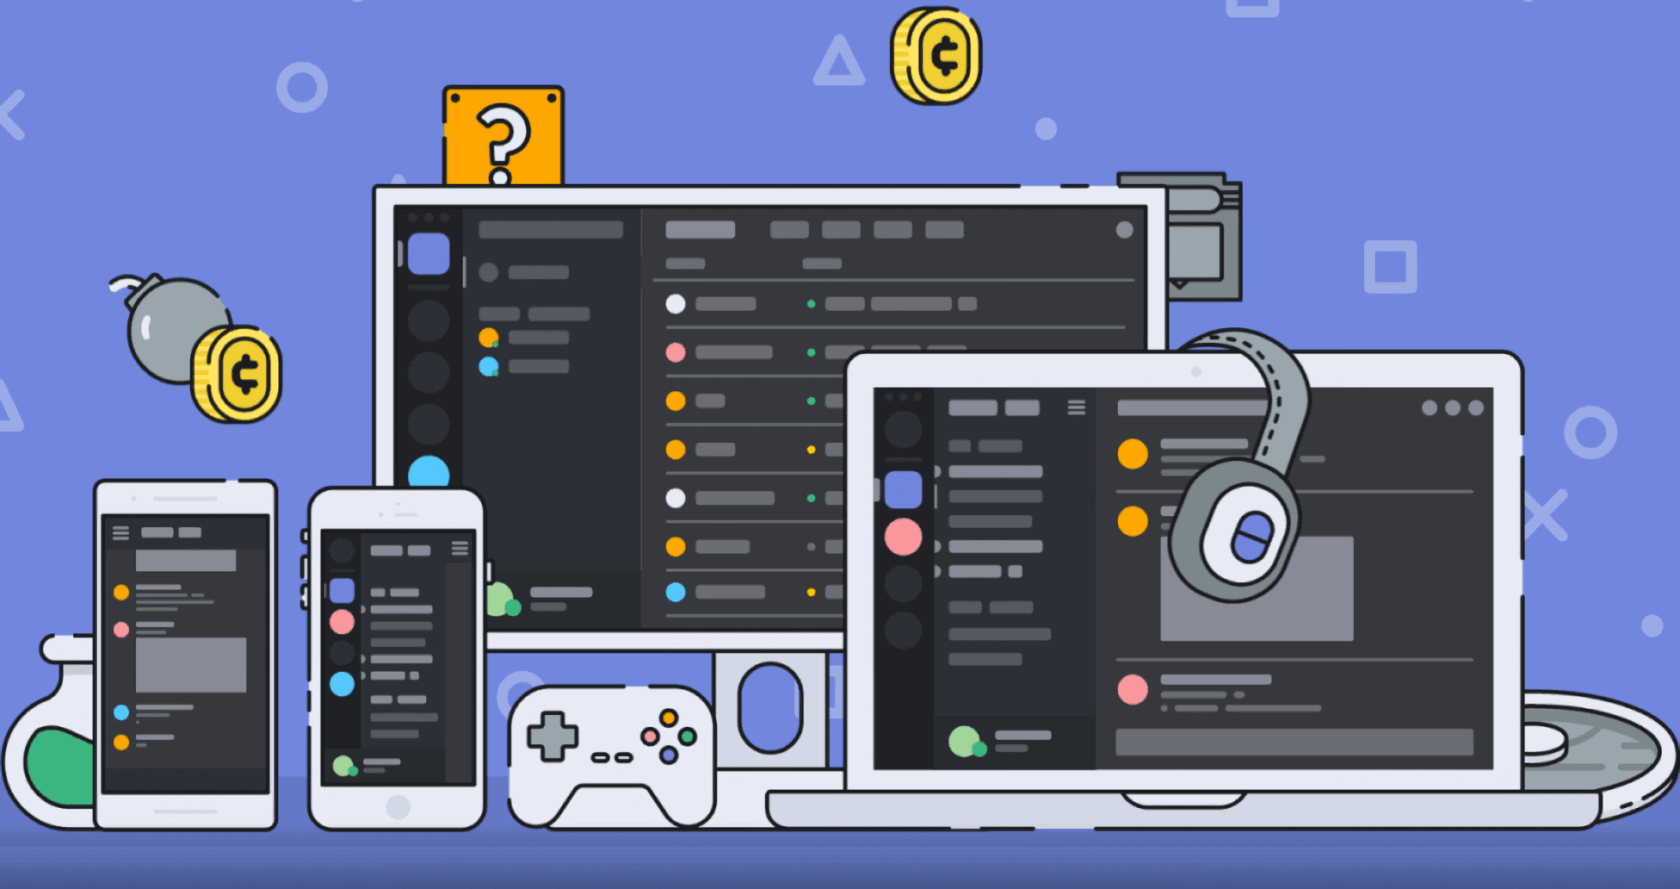 Discord has surpassed 250 million registered users